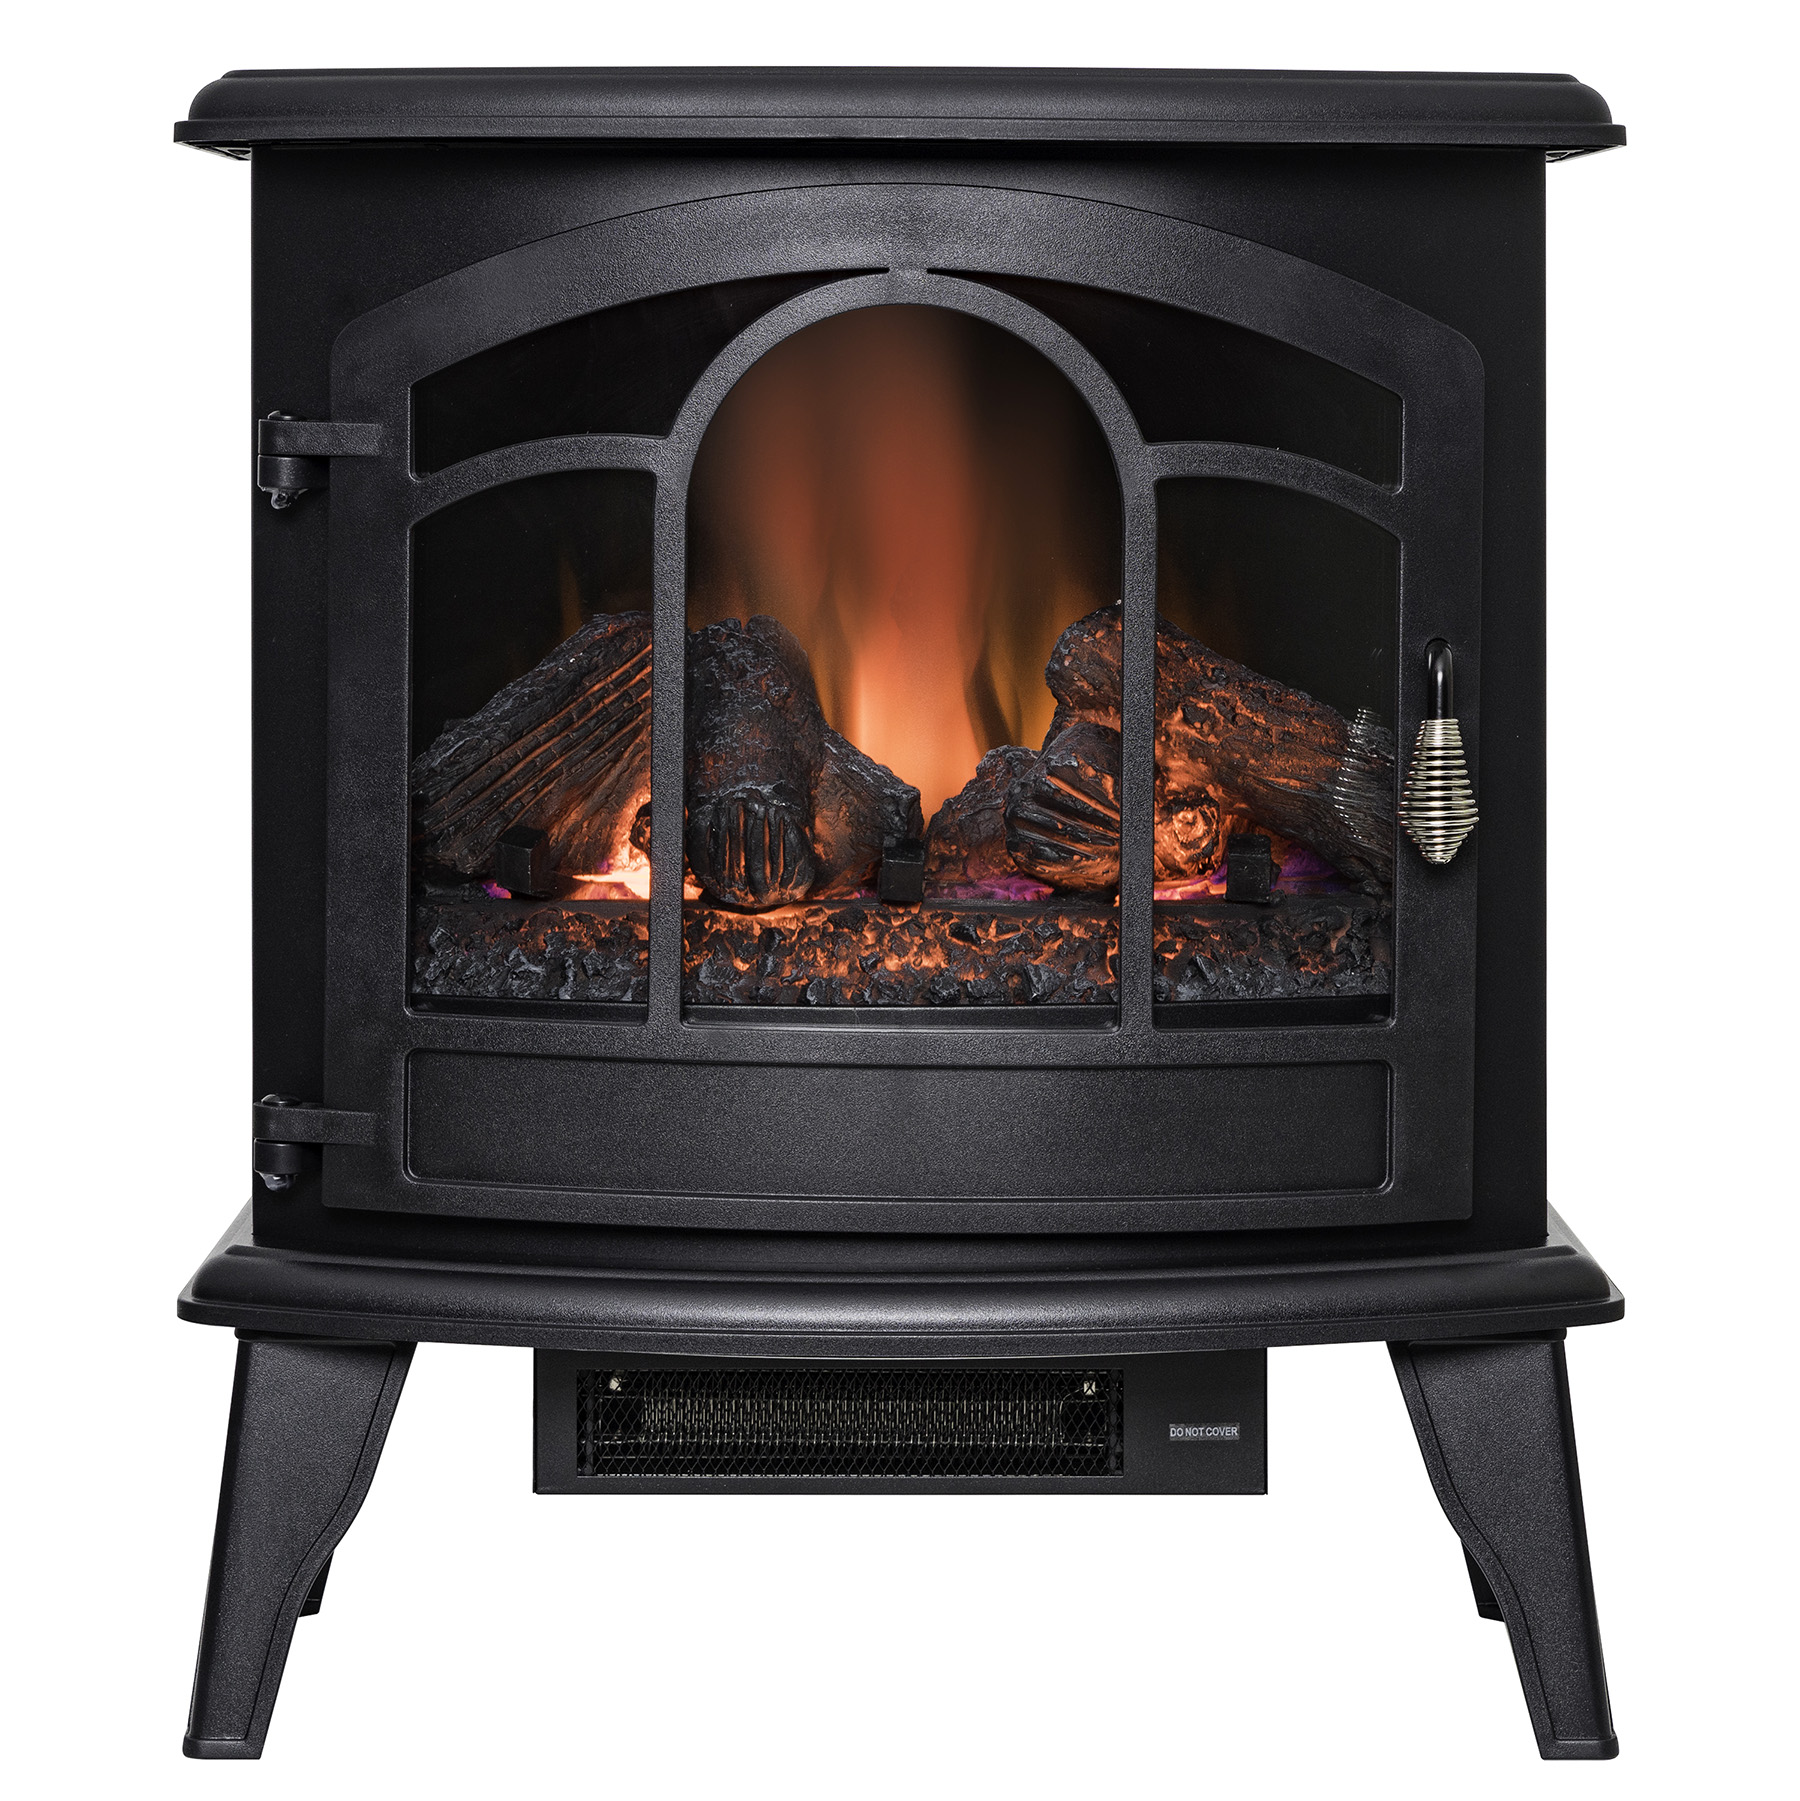 "AKDY FP0085 20"" Freestanding Portable Electric Fireplace Black 3D Flames Remote Logs Heater"